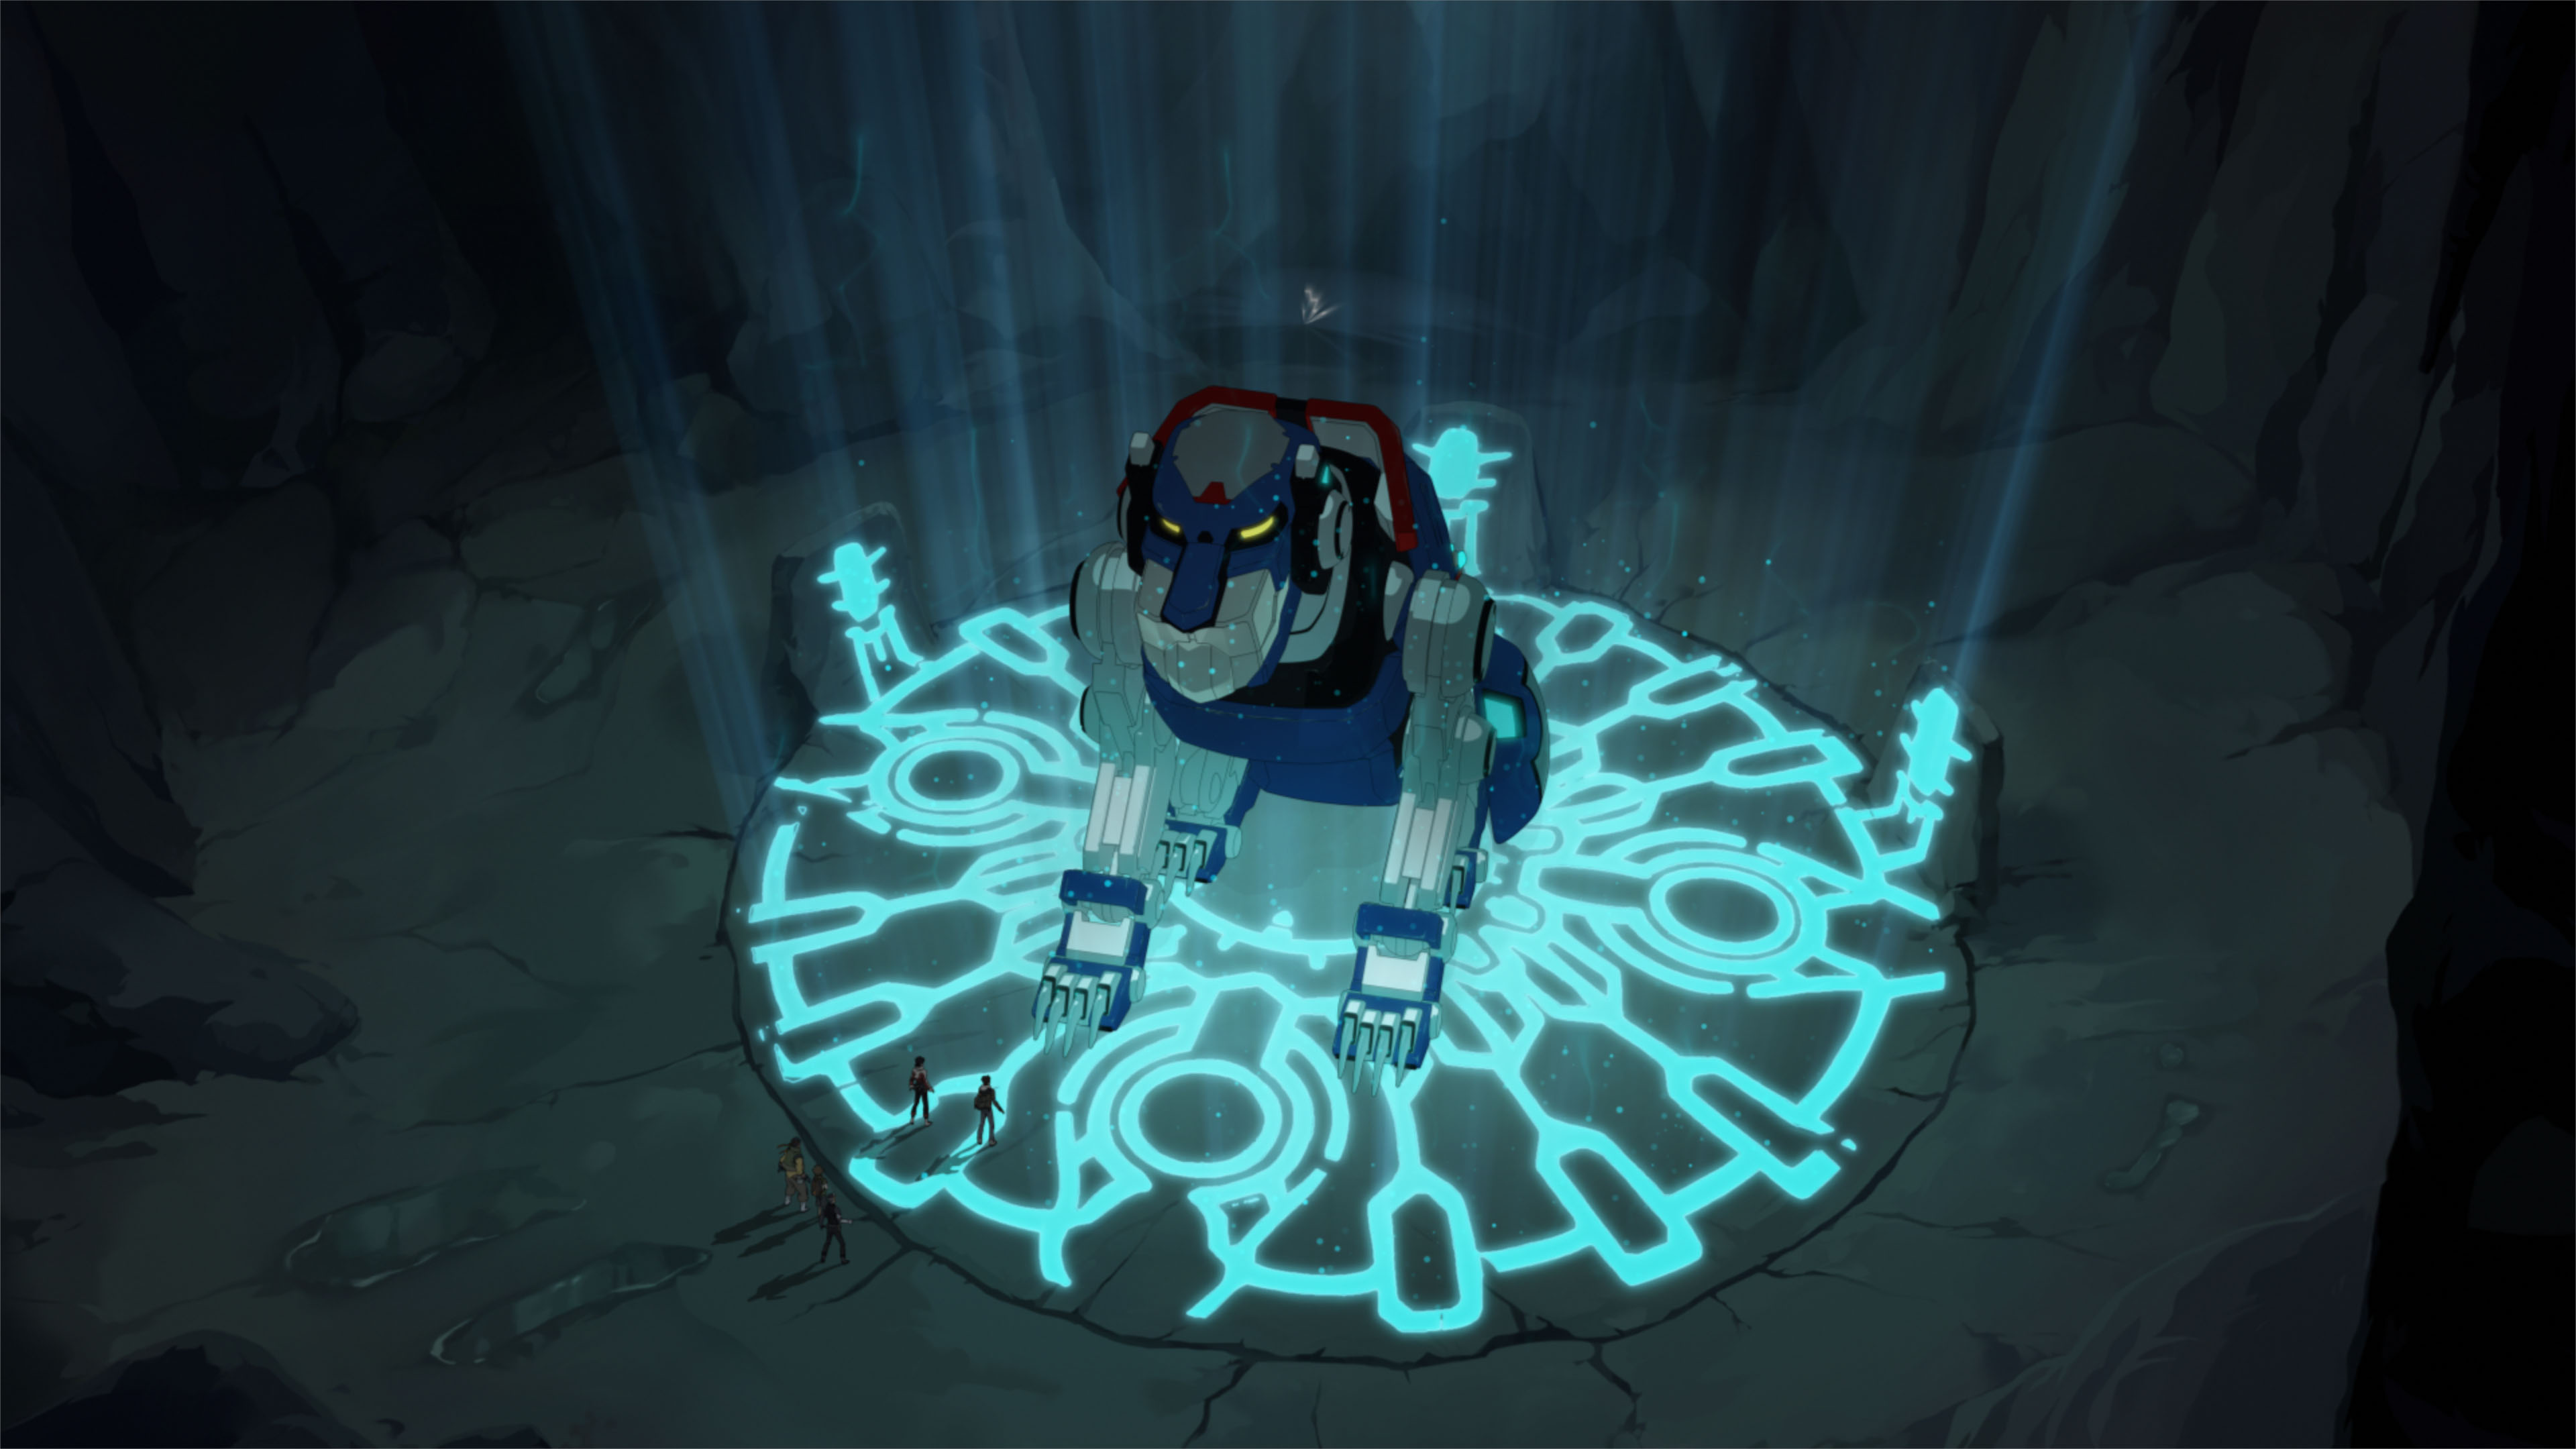 voltron-legendary-defender-image-blue-lion-lance